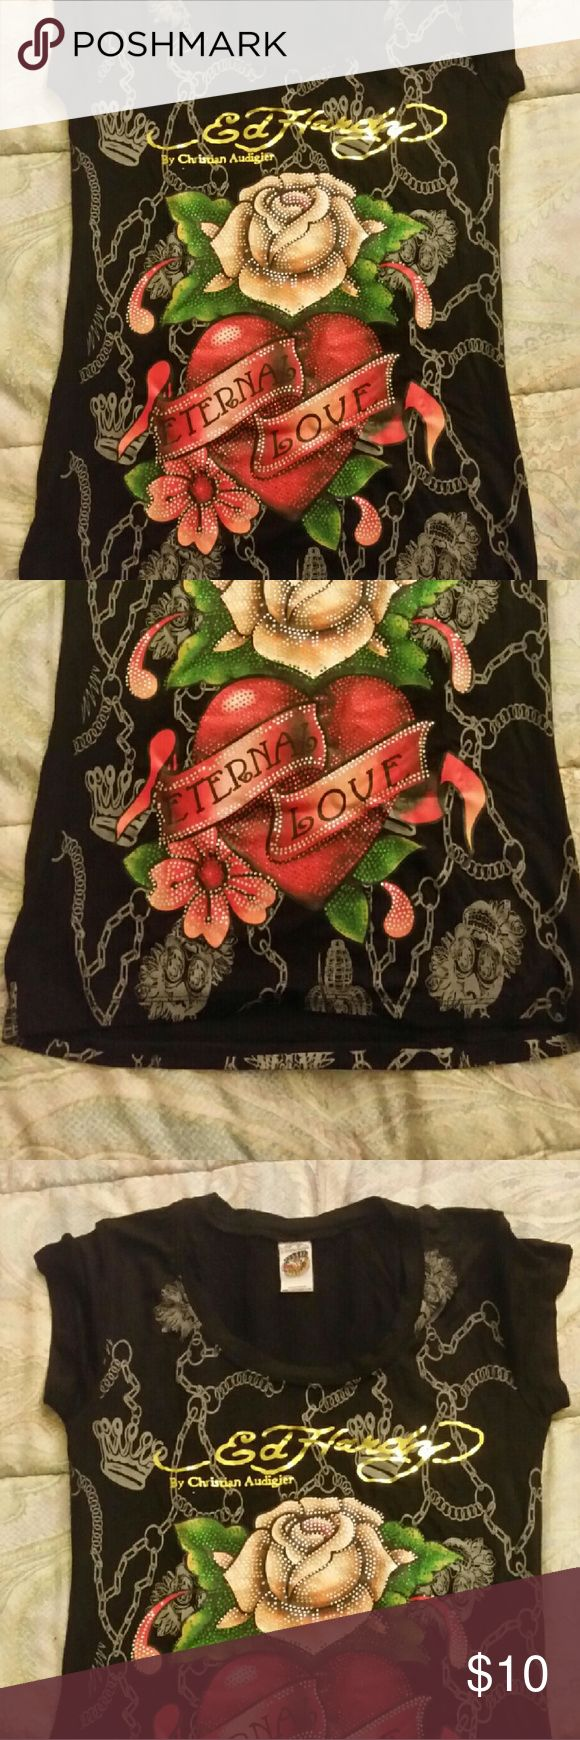 """Ed Hardy tshirt Ed Hardy tshirt by Christian Audigier. Worn maybe 2x. Rose and heart on front with """"Eternal Love"""" written in heart. Rhinestones over front flowers/rose design. Ed Hardy Tops Tees - Short Sleeve"""